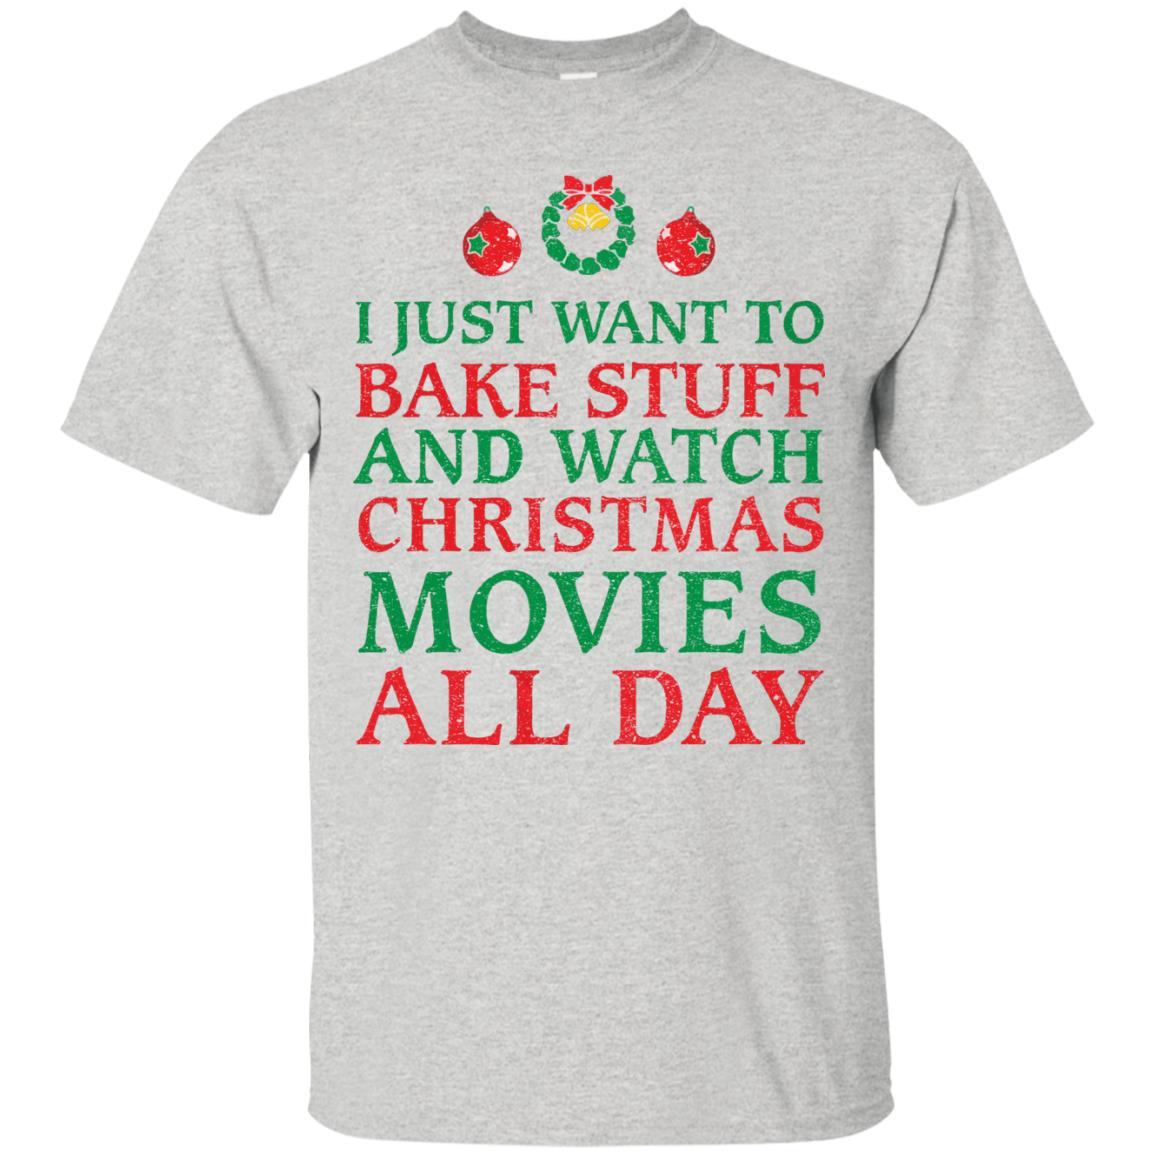 image 2694 - I Just Want to Bake Stuff and Watch Christmas Movie All Day Sweater, Ugly Sweatshirts